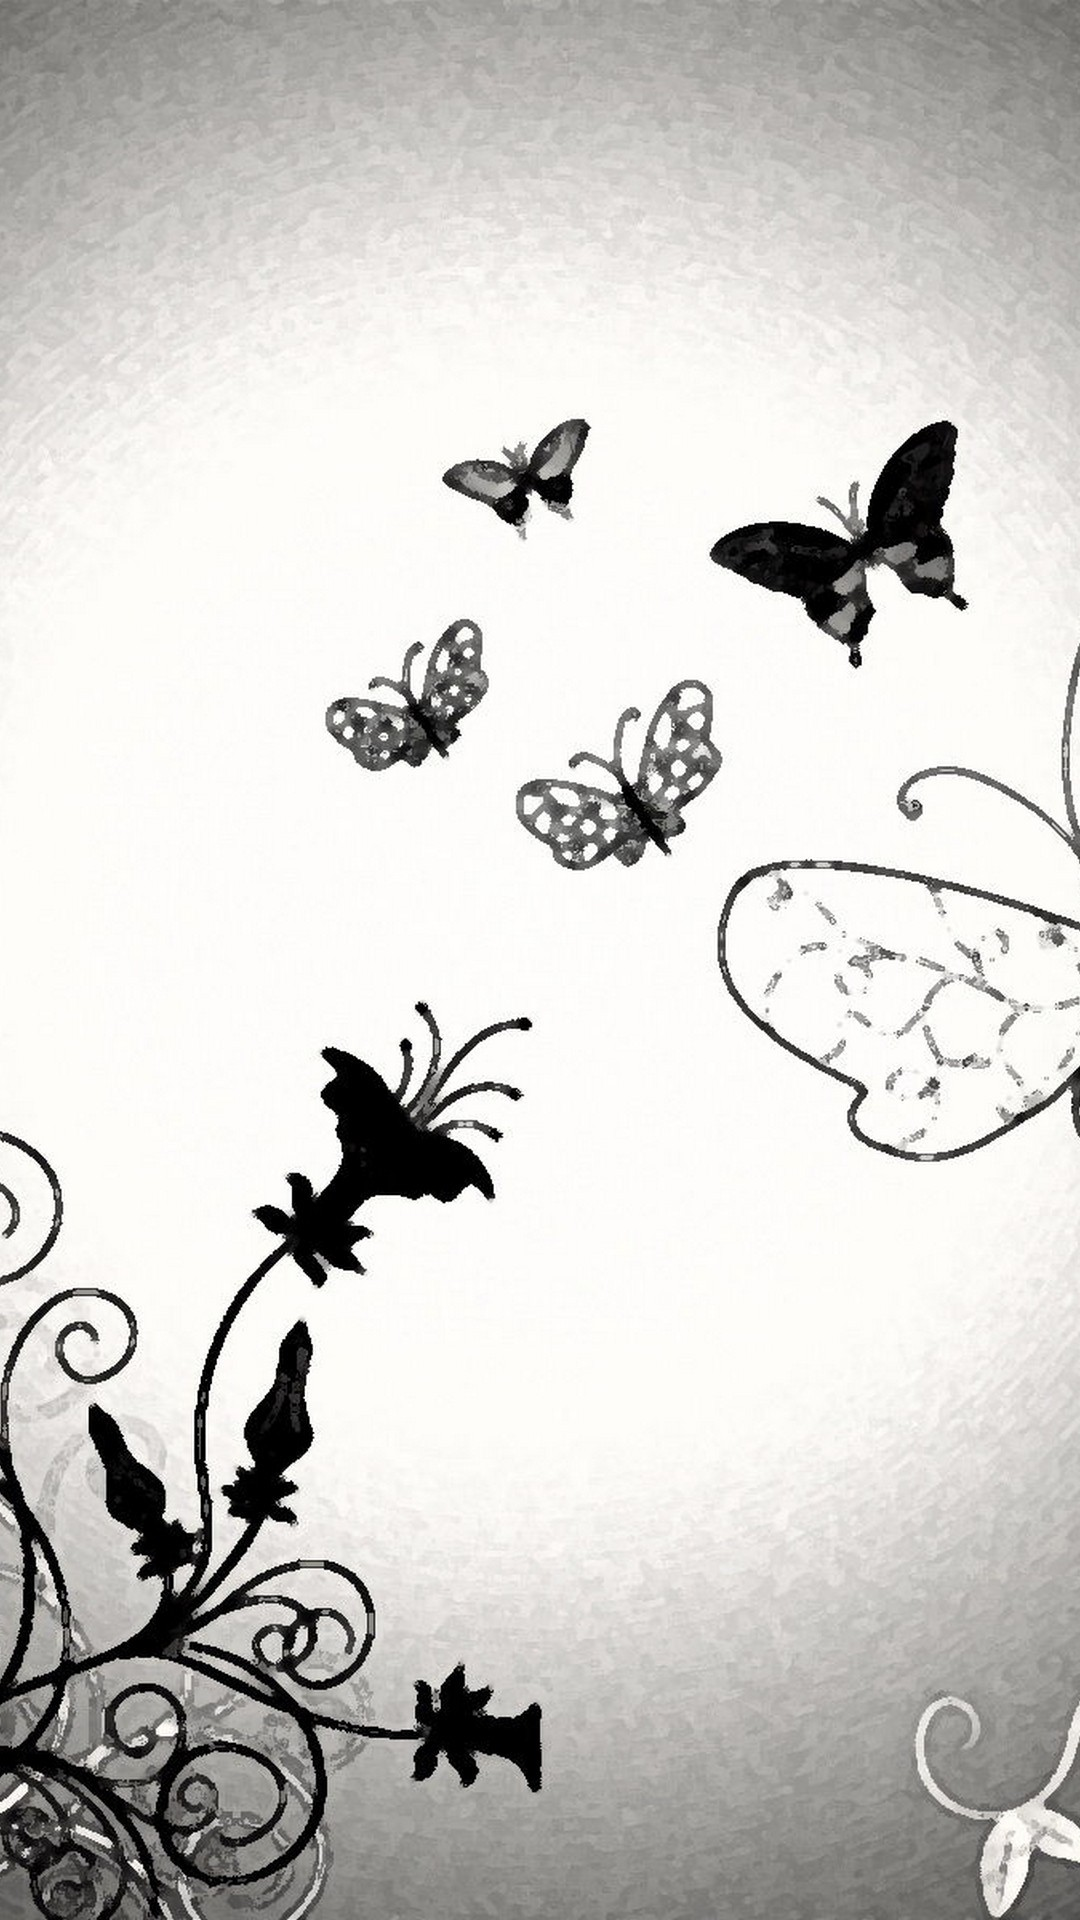 Iphone 8 Wallpaper Butterfly Design Resolution Butterfly Background Black And White 1080x1920 Wallpaper Teahub Io